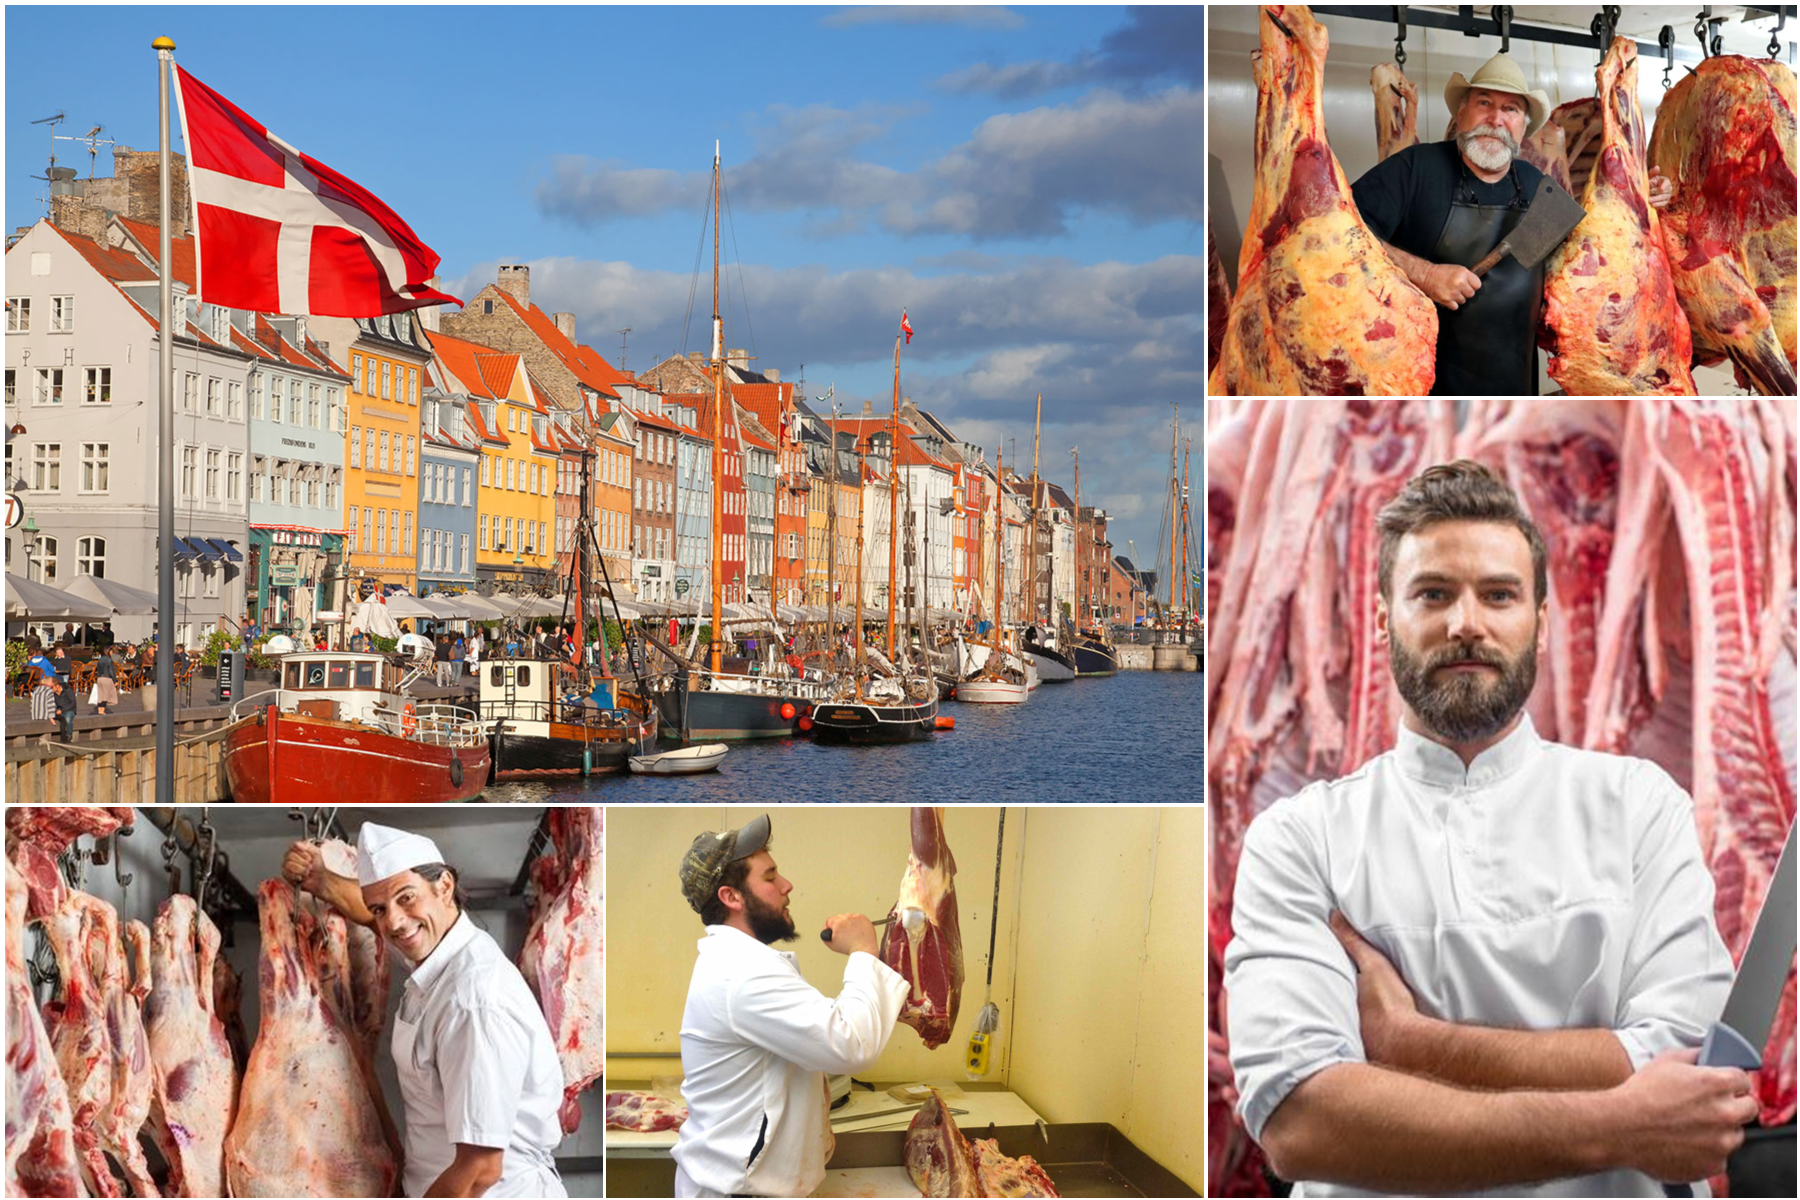 Butcher job in Denmark